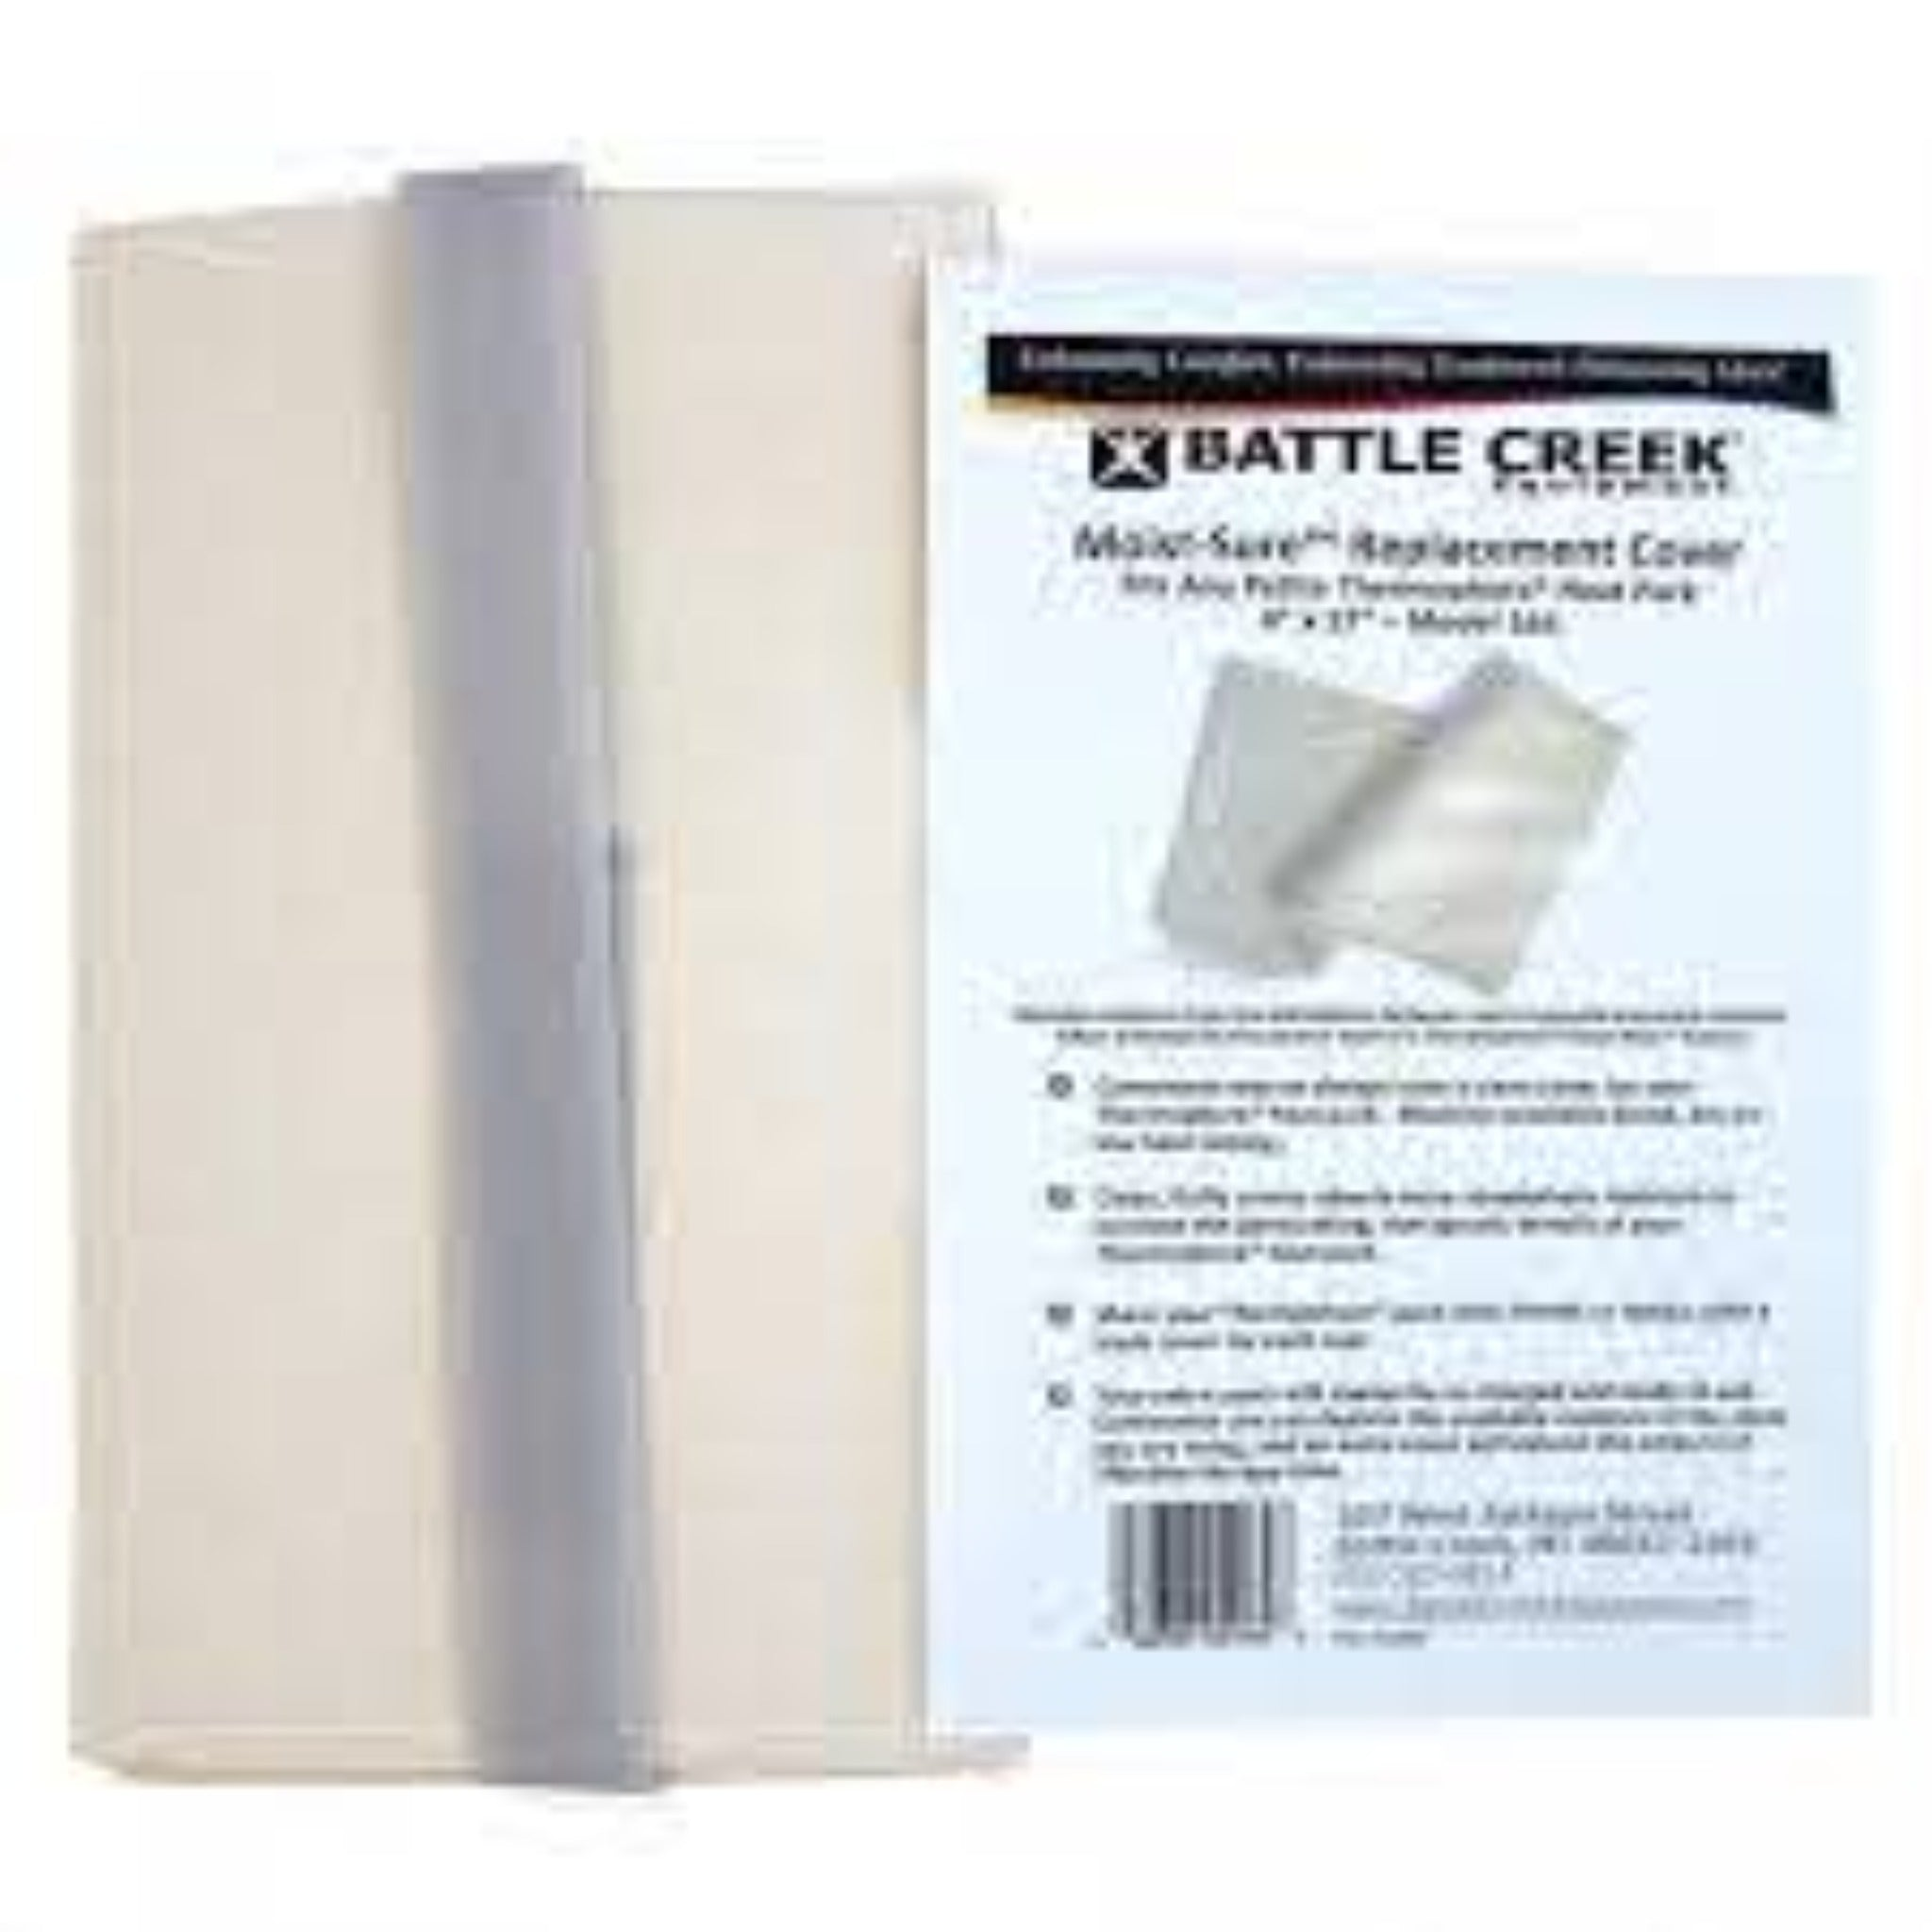 Battle Creek Thermophore Heating Pad Replacement Cover